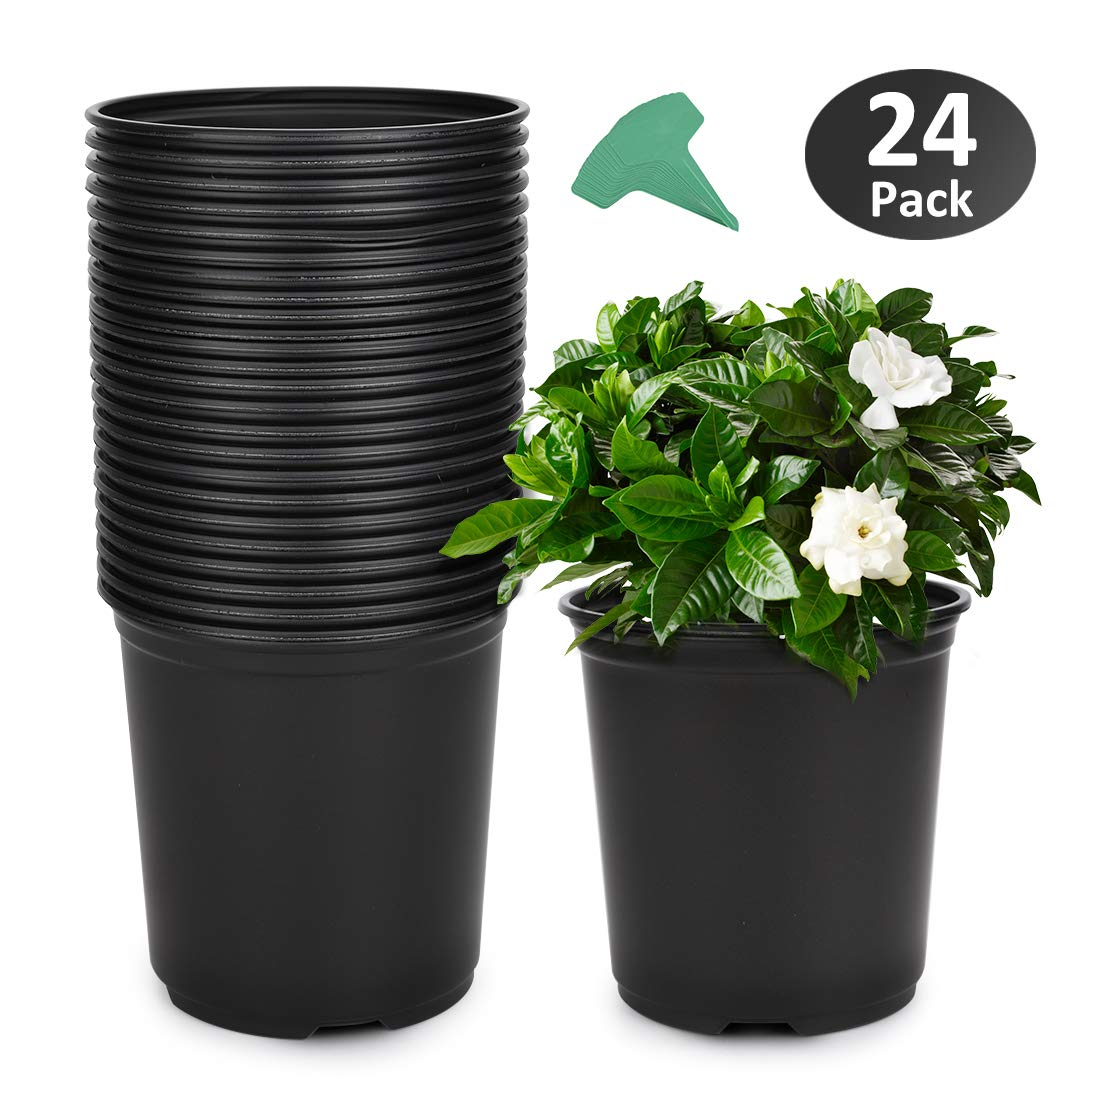 GROWNEER 24-Pack 0.7 Gallon Flexible Nursery Pot Flower Pots with 15 Pcs Plant Labels, Plastic Plant Container Perfect for Indoor Outdoor Plants, Seedlings, Vegetables, Succulents and Cuttings 2.5Qt by GROWNEER